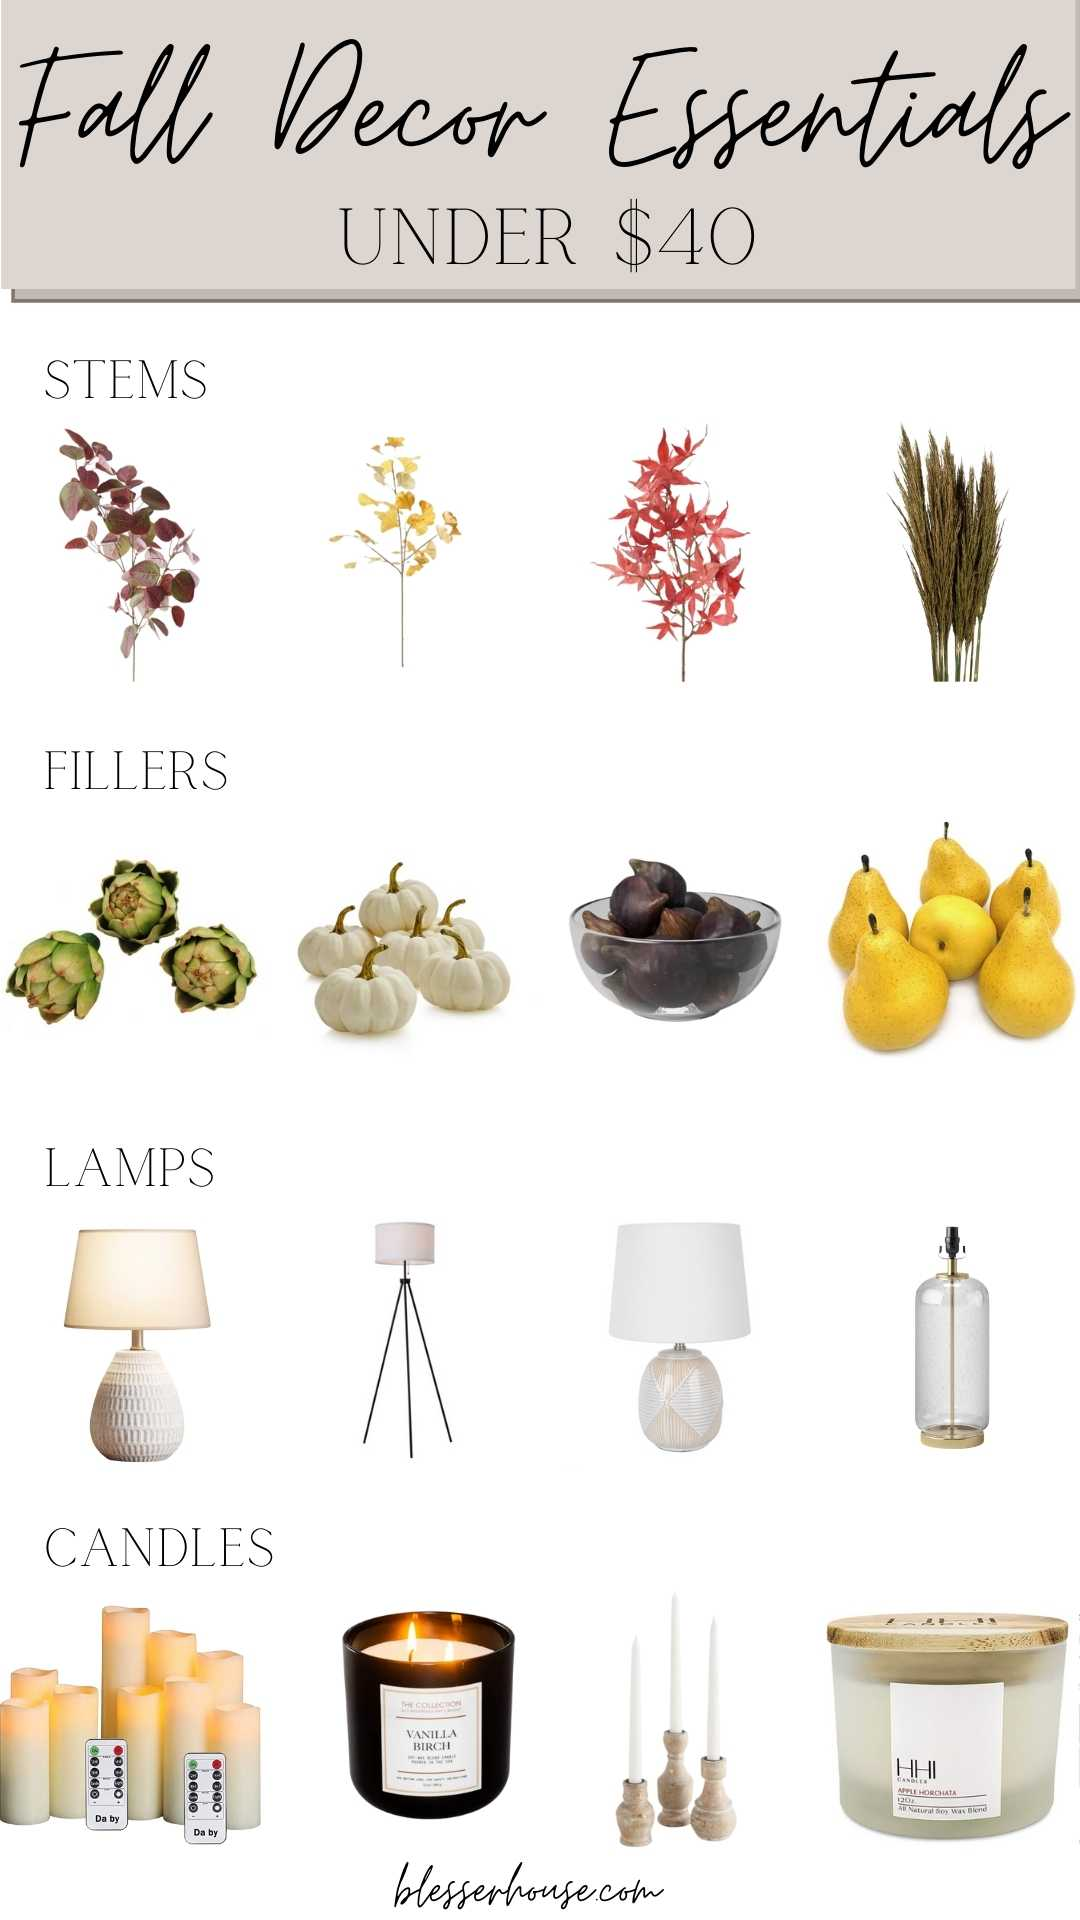 Fall Home Decor Under $40 - stems, fillers, lamps, and candles